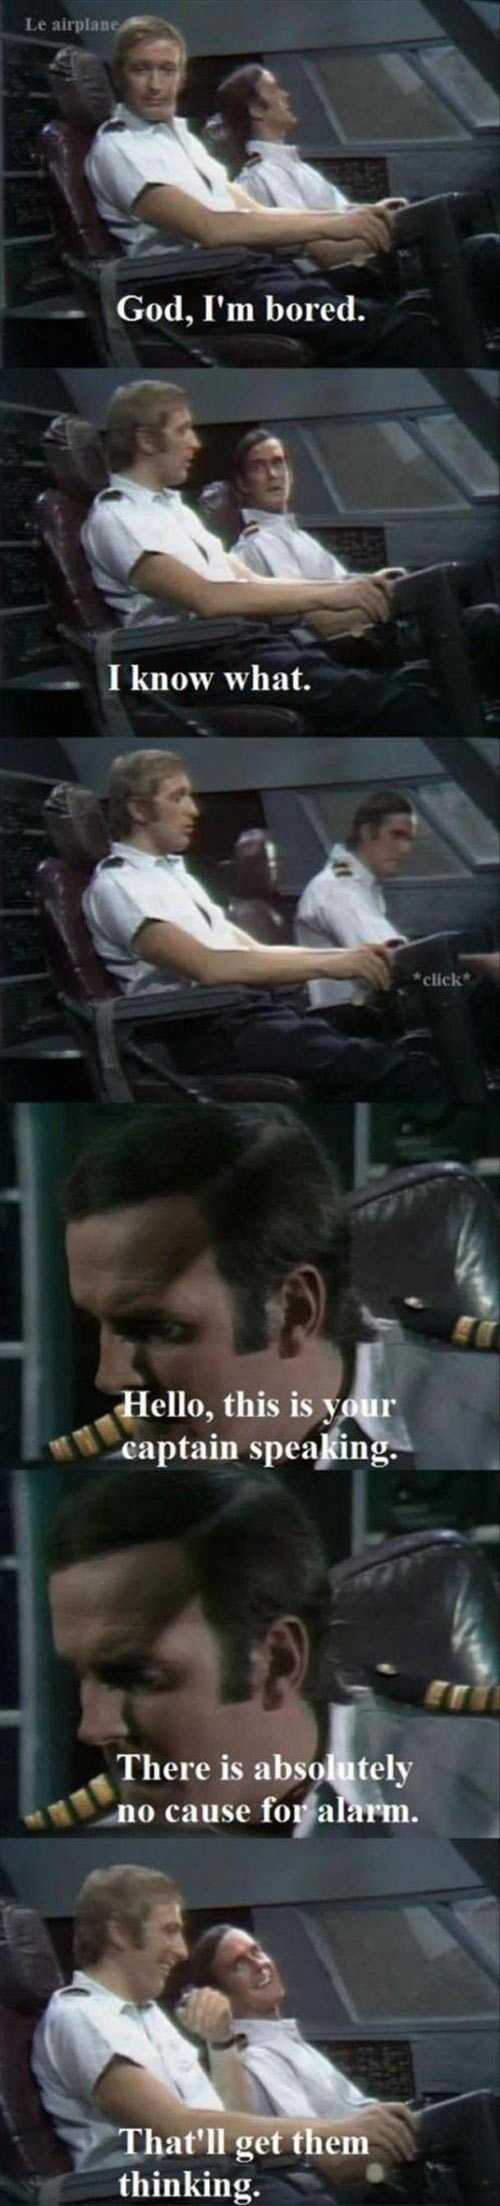 When Pilots Get Bored